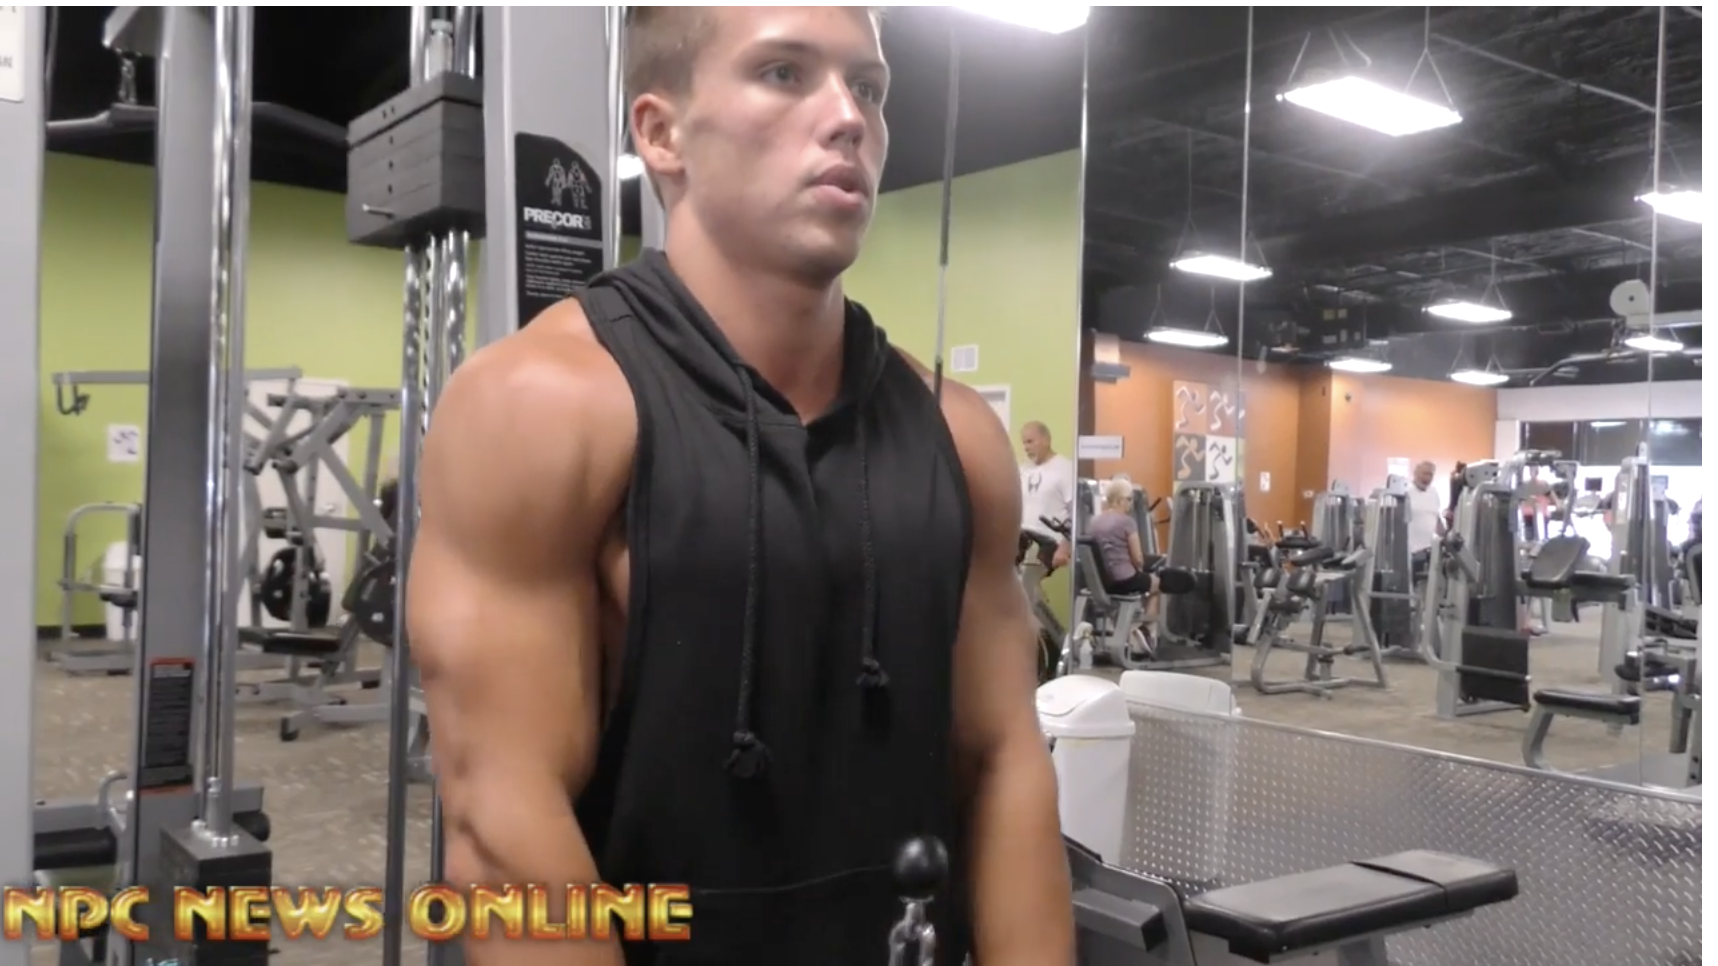 NPC Teen Bodybuilder  Zach Walton Shares His Story With His Dad After Competing In The NPC Gainesville Classic